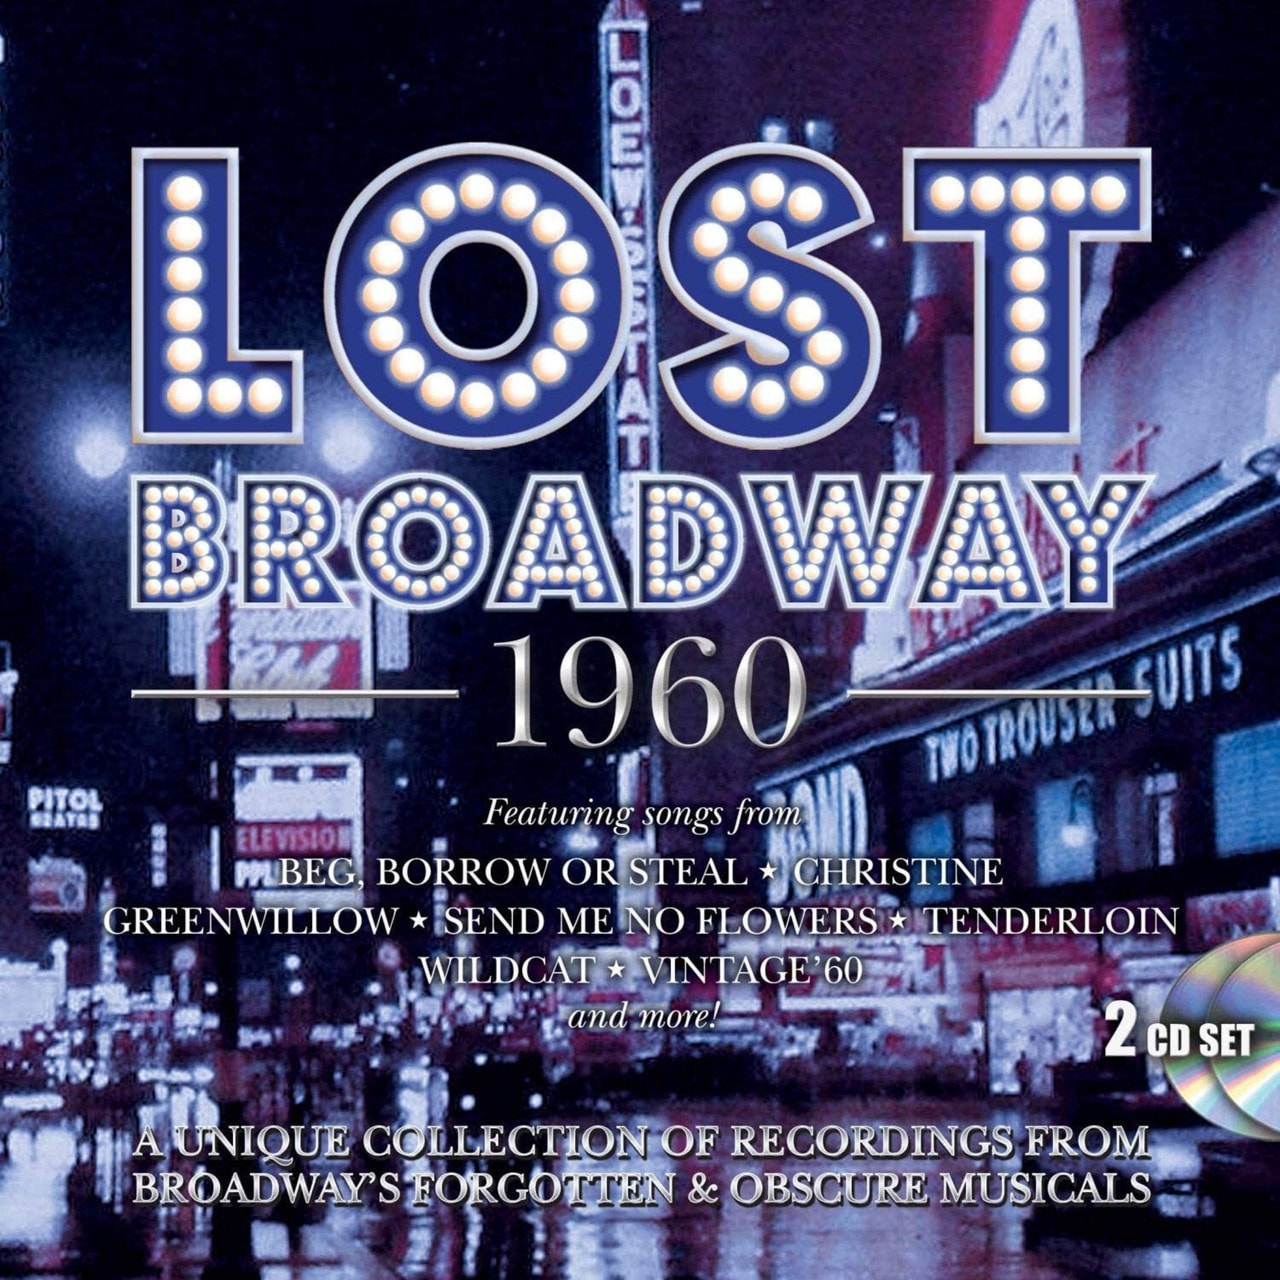 Lost Broadway 1960: Broadway's Forgotten & Obscure Musicals - 1